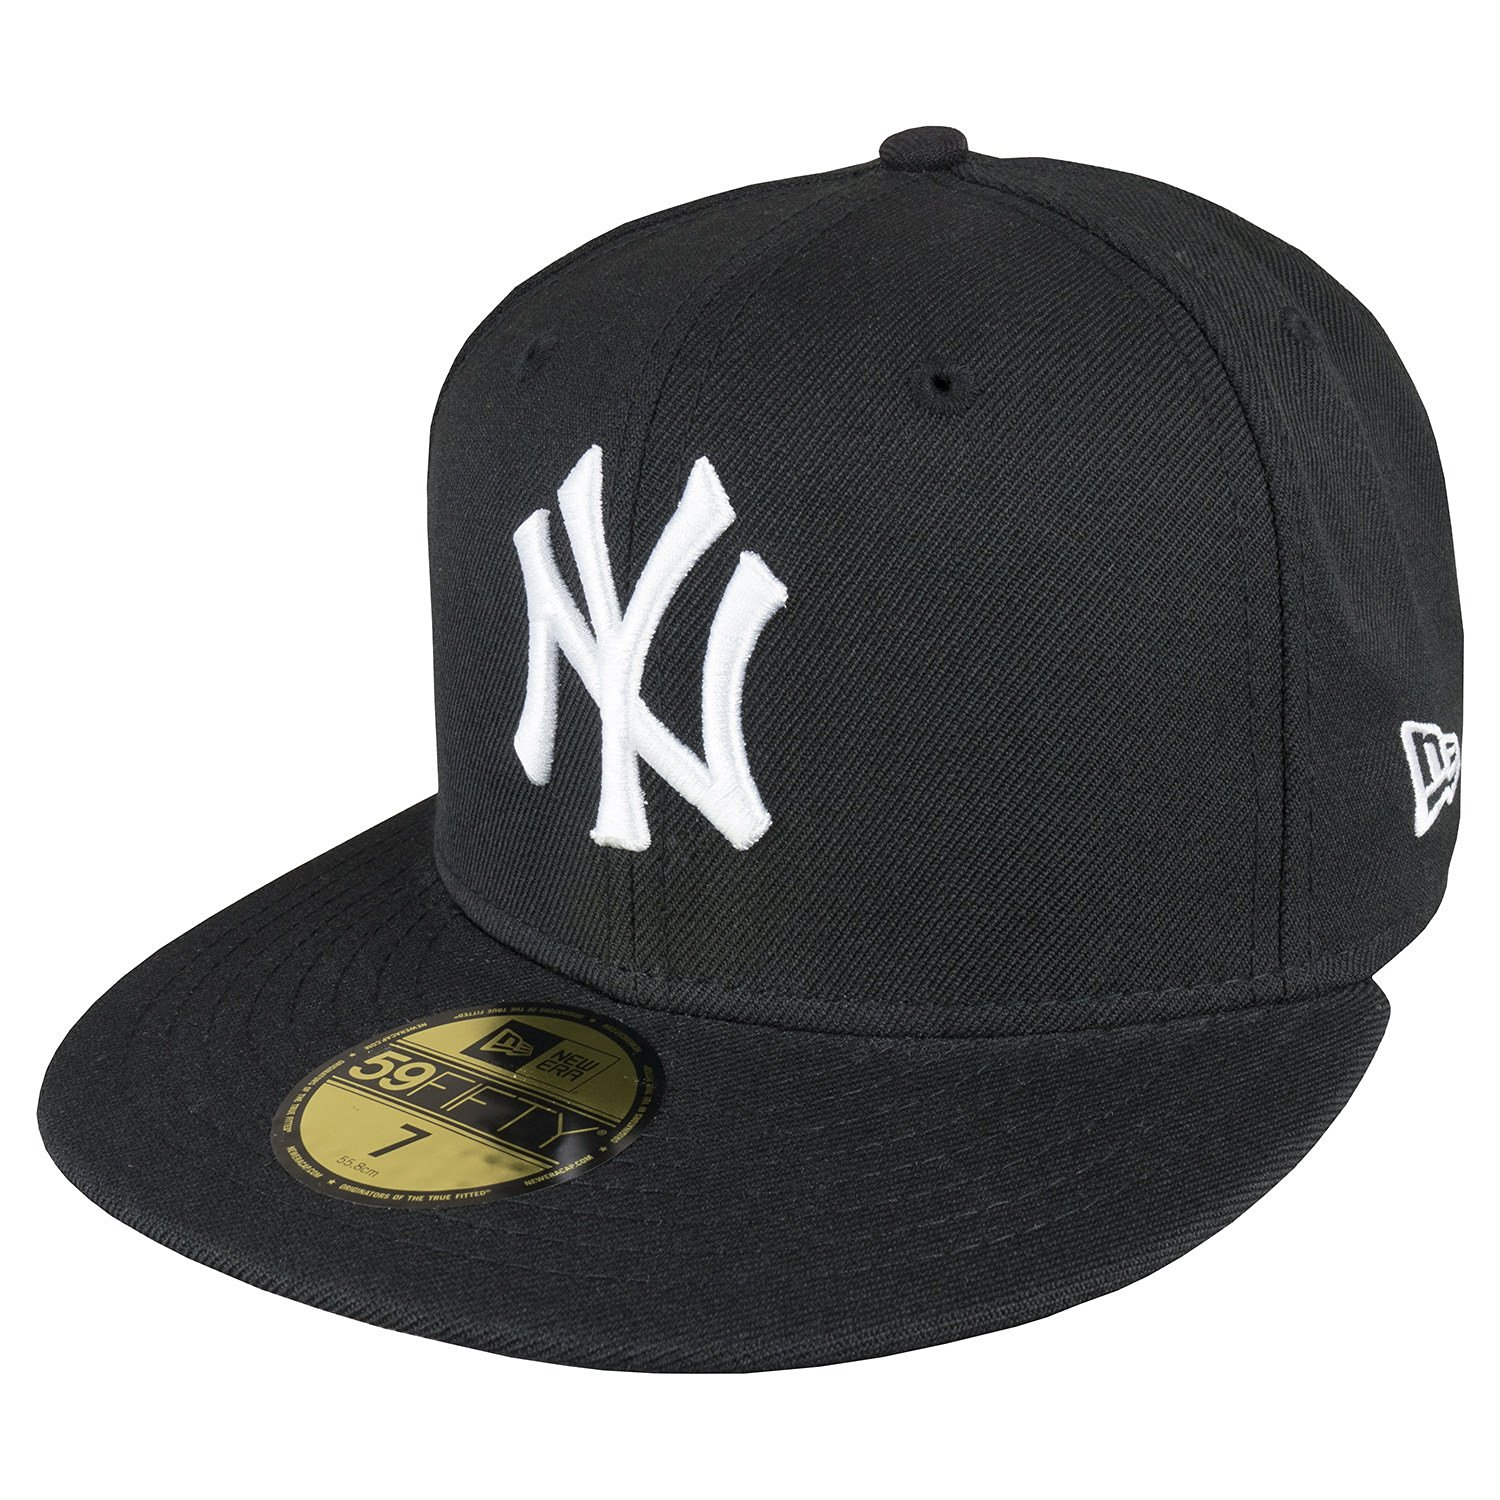 6e2b7ab4e14db Buy New Era 59FIFTY NY Yankees Cap - Black - 8 in Cheap Price on  m.alibaba.com